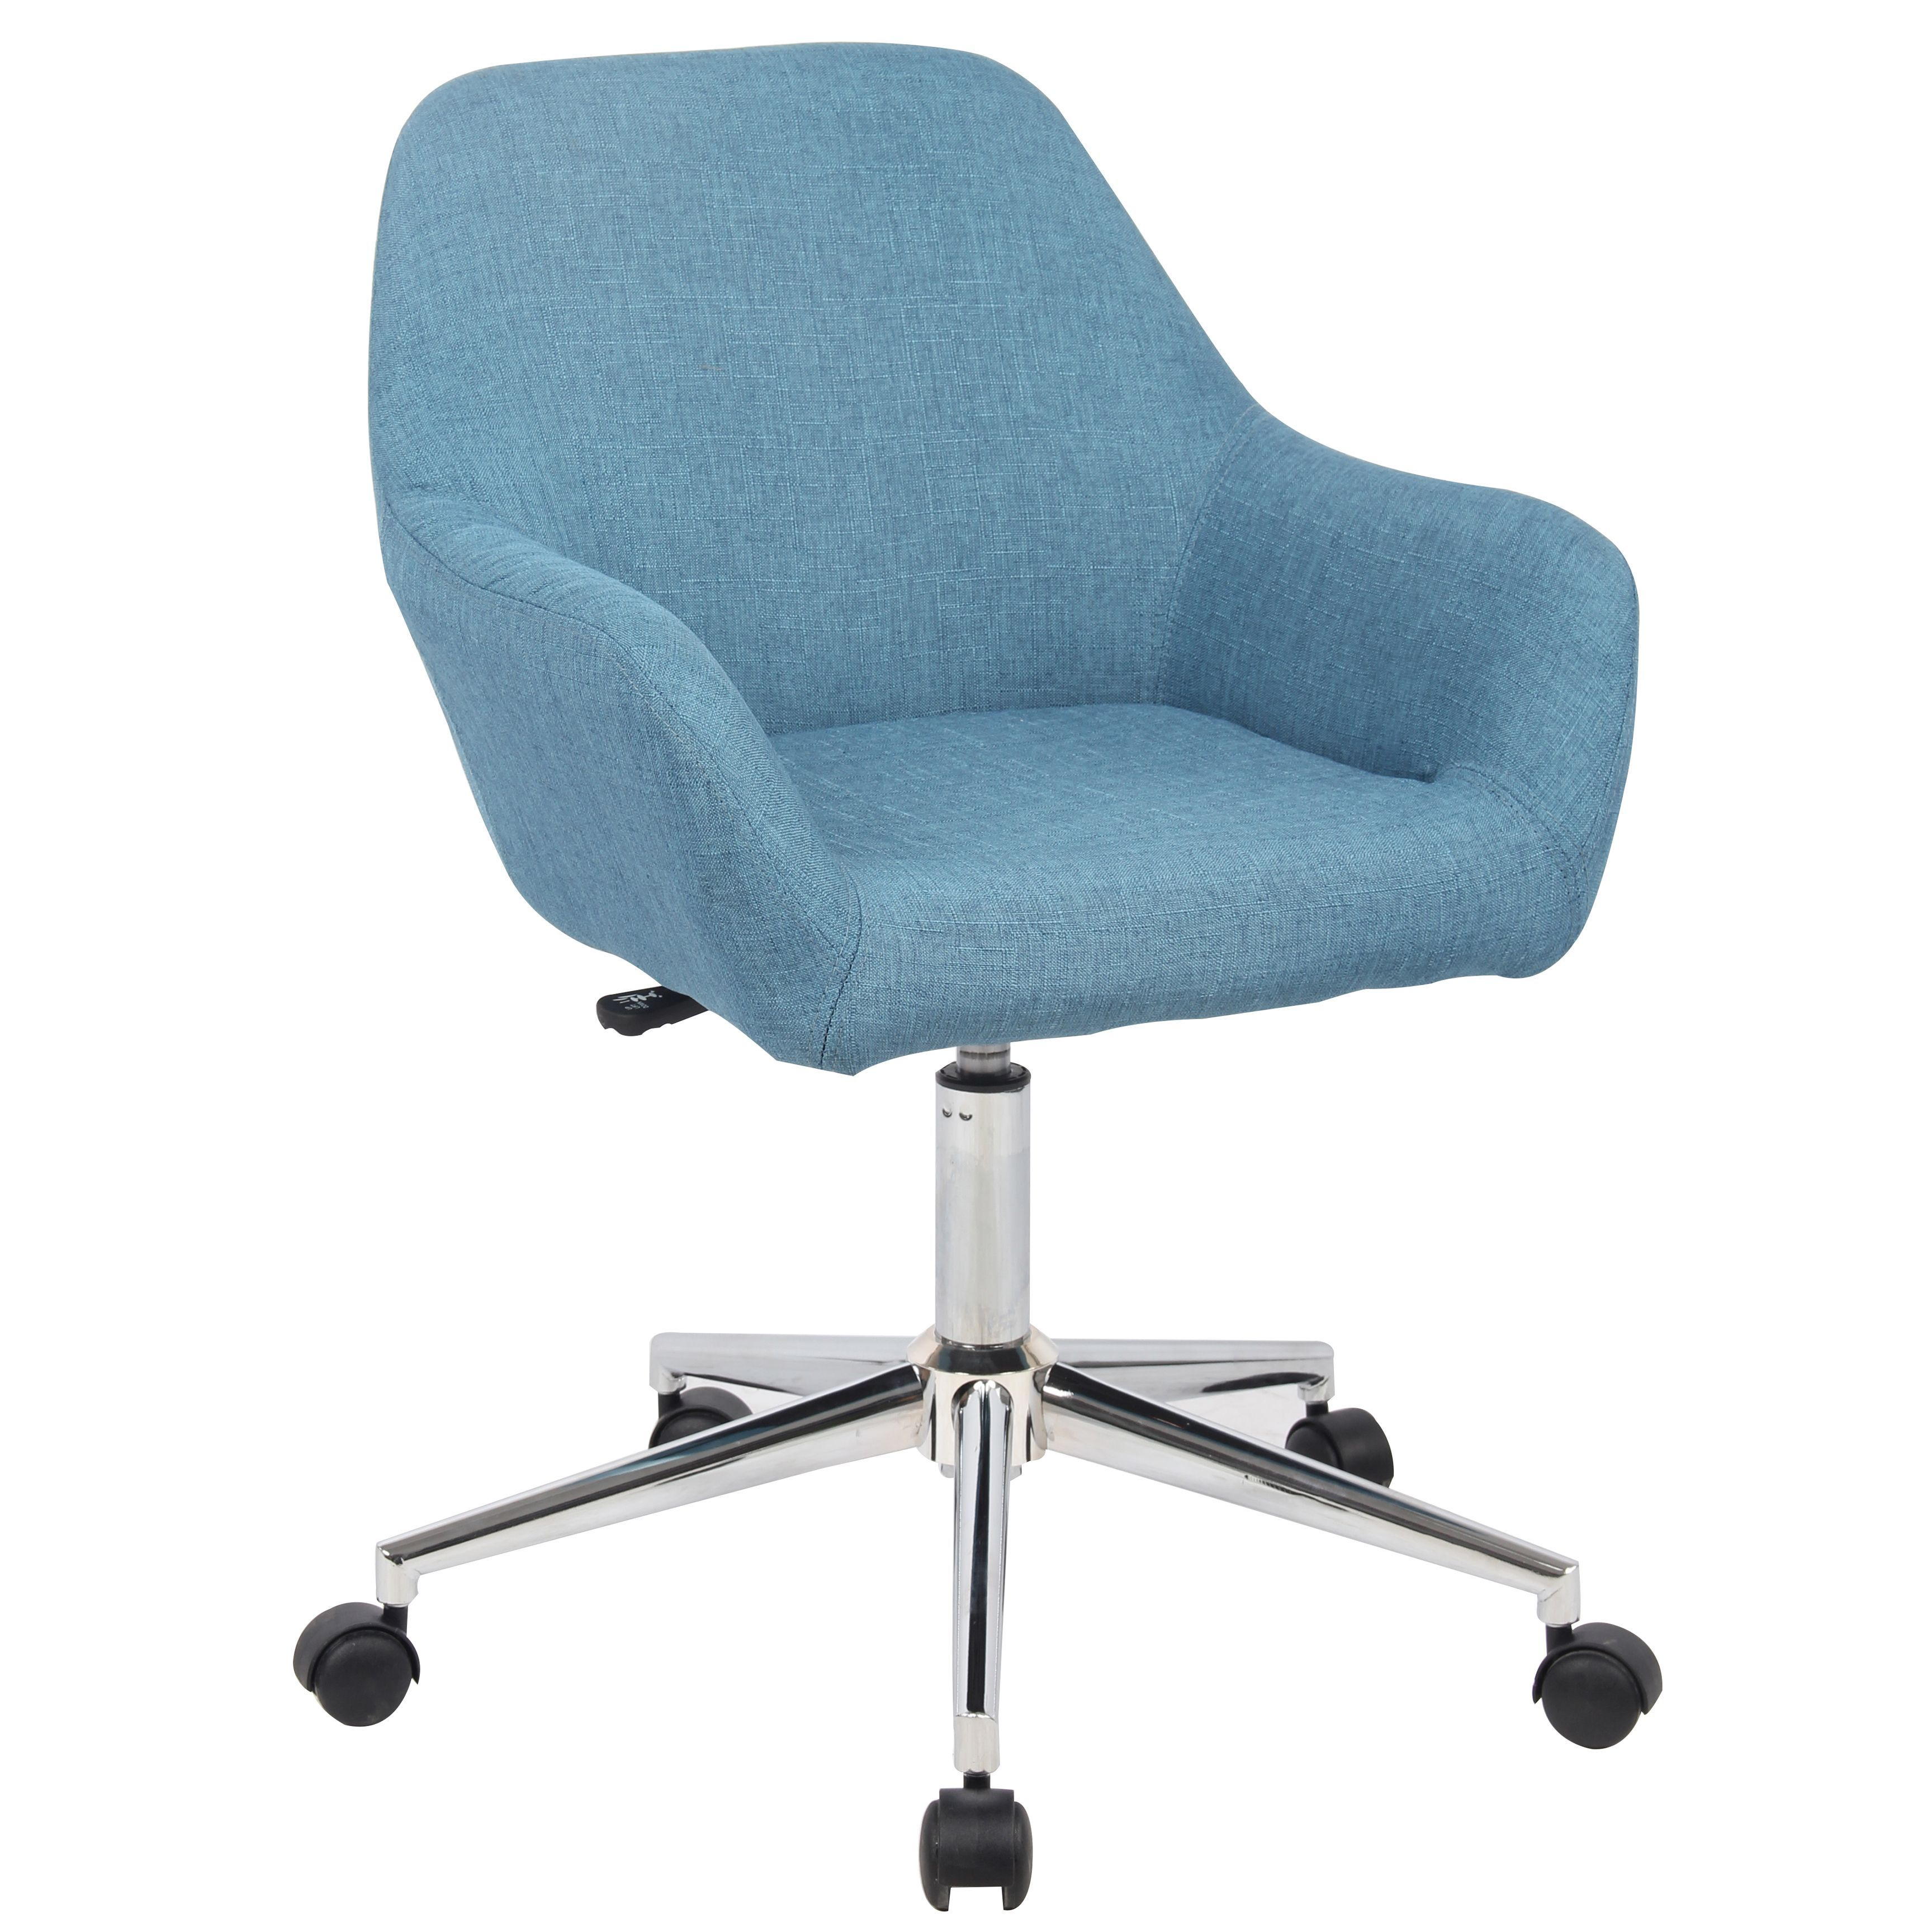 P The Workday In Comfort And Style With Porthos Home Montgomery Upholstered Office Chair